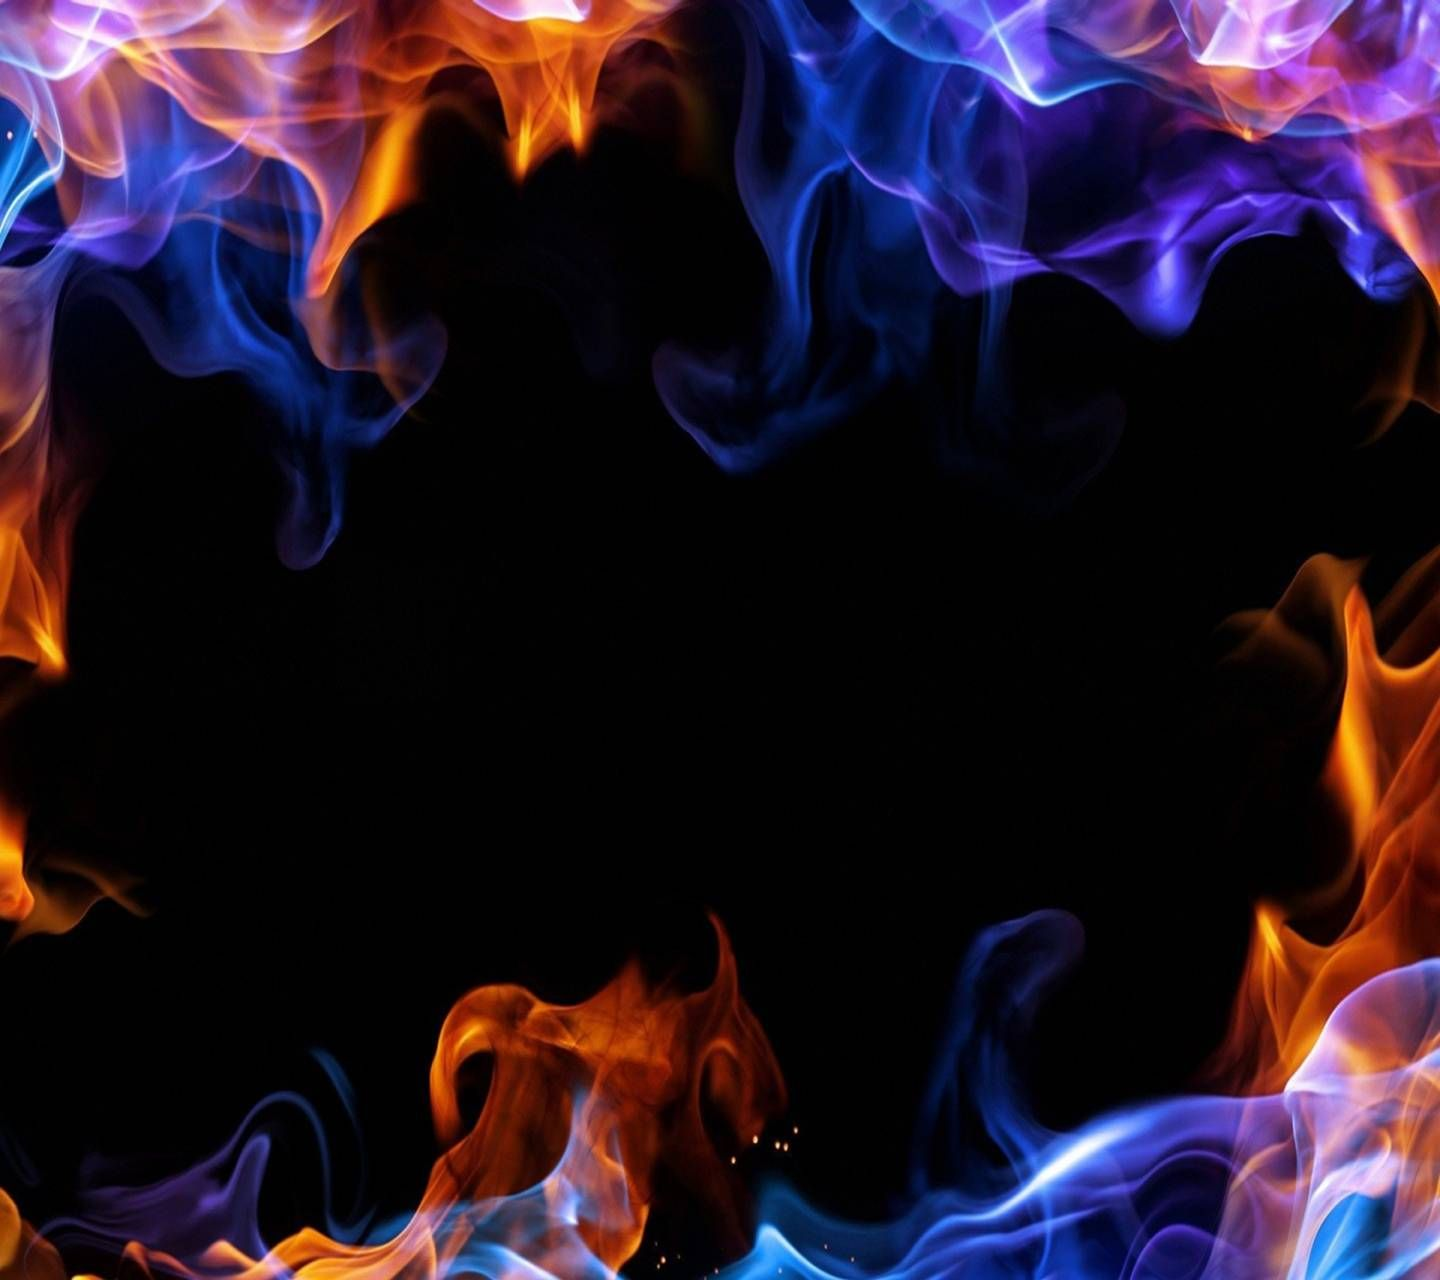 Download Smoke Art Wallpaper By Quindit 11 Free On Zedge Now Browse Millions Of Popular Abstract Smoke Background Background Hd Wallpaper Smoke Wallpaper